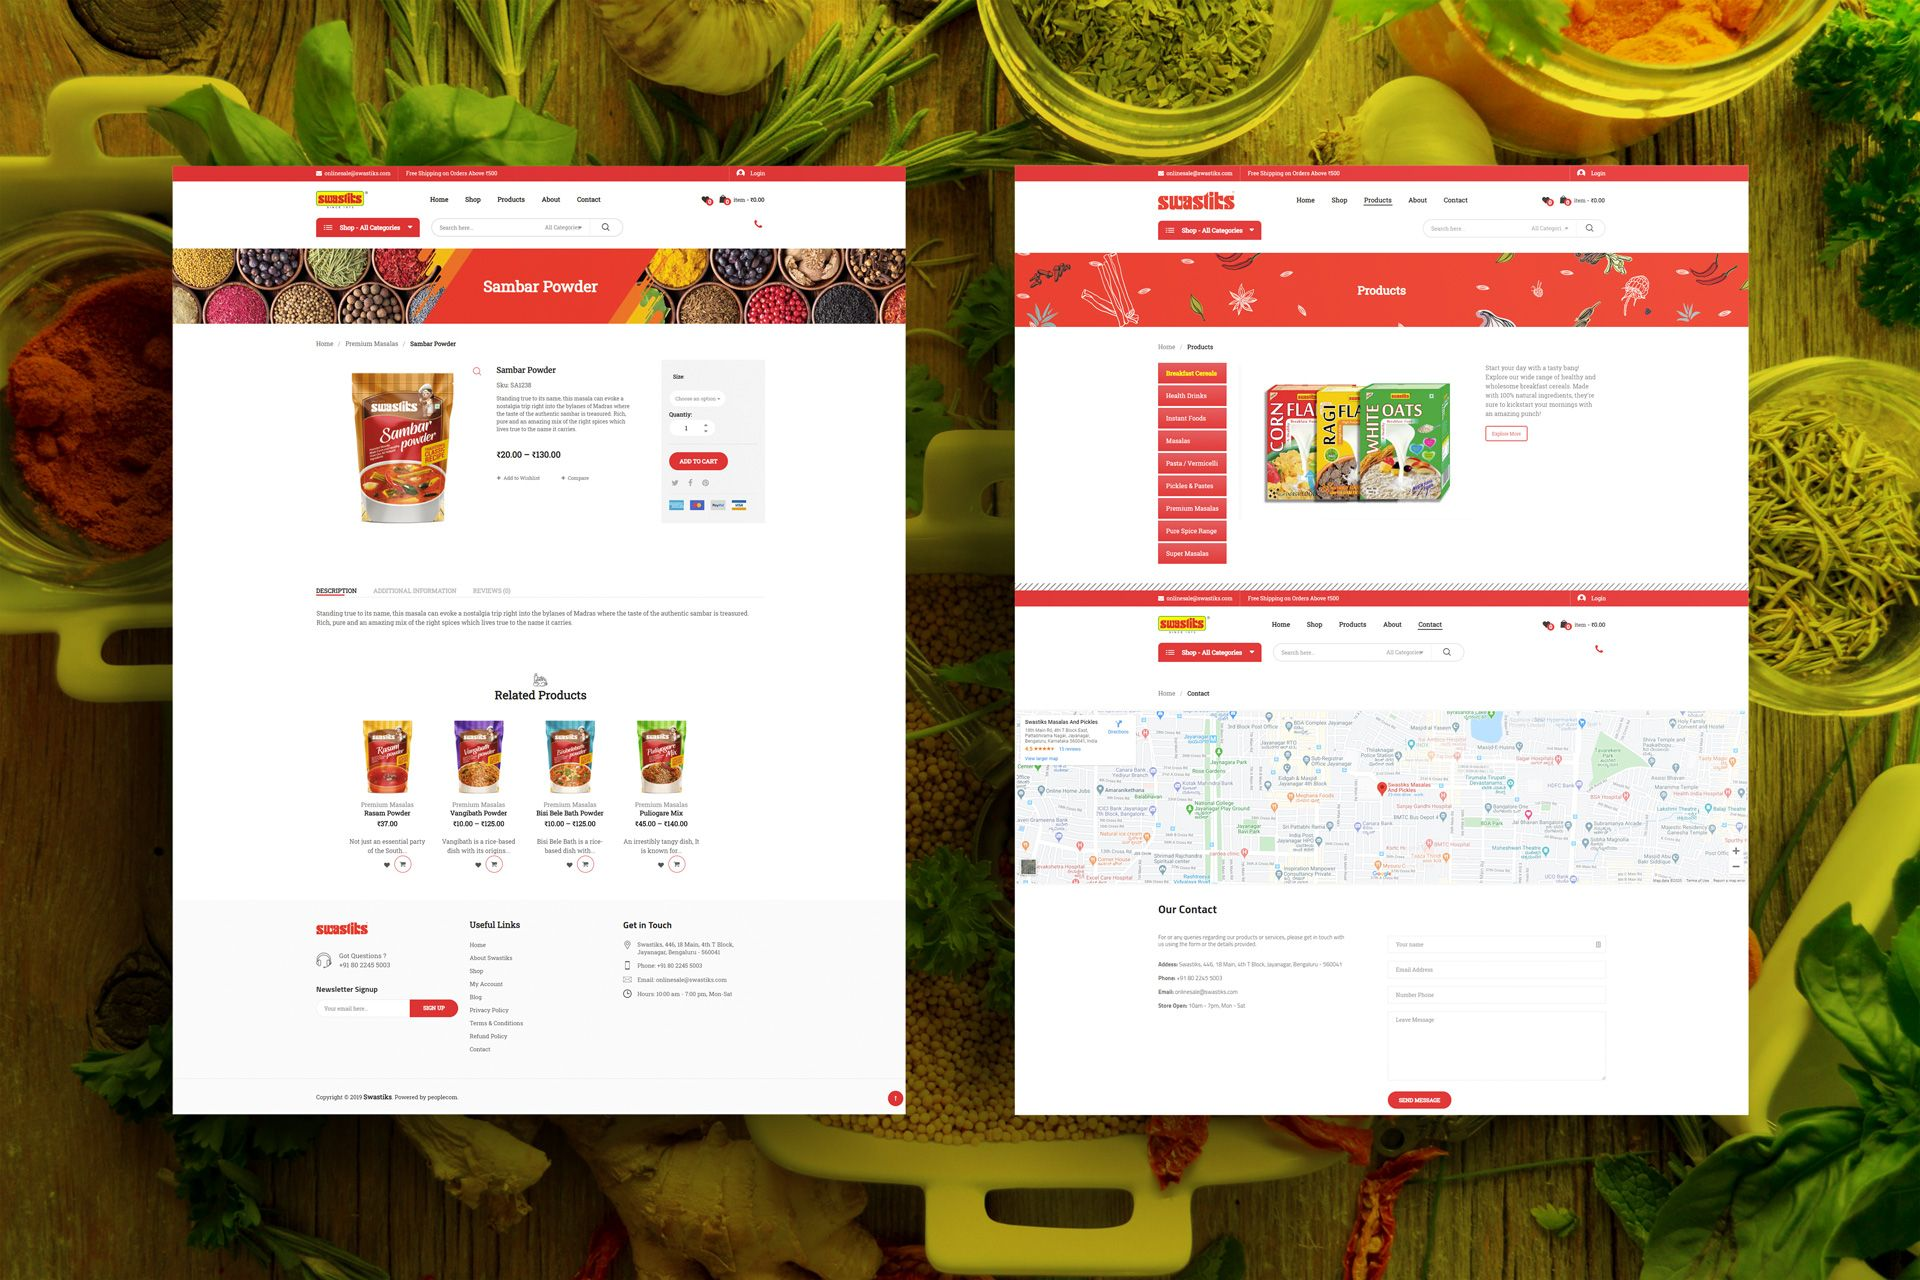 Swastiks Ecommerce Website Screens for Salman Ravoof – Product and Catalog Pages